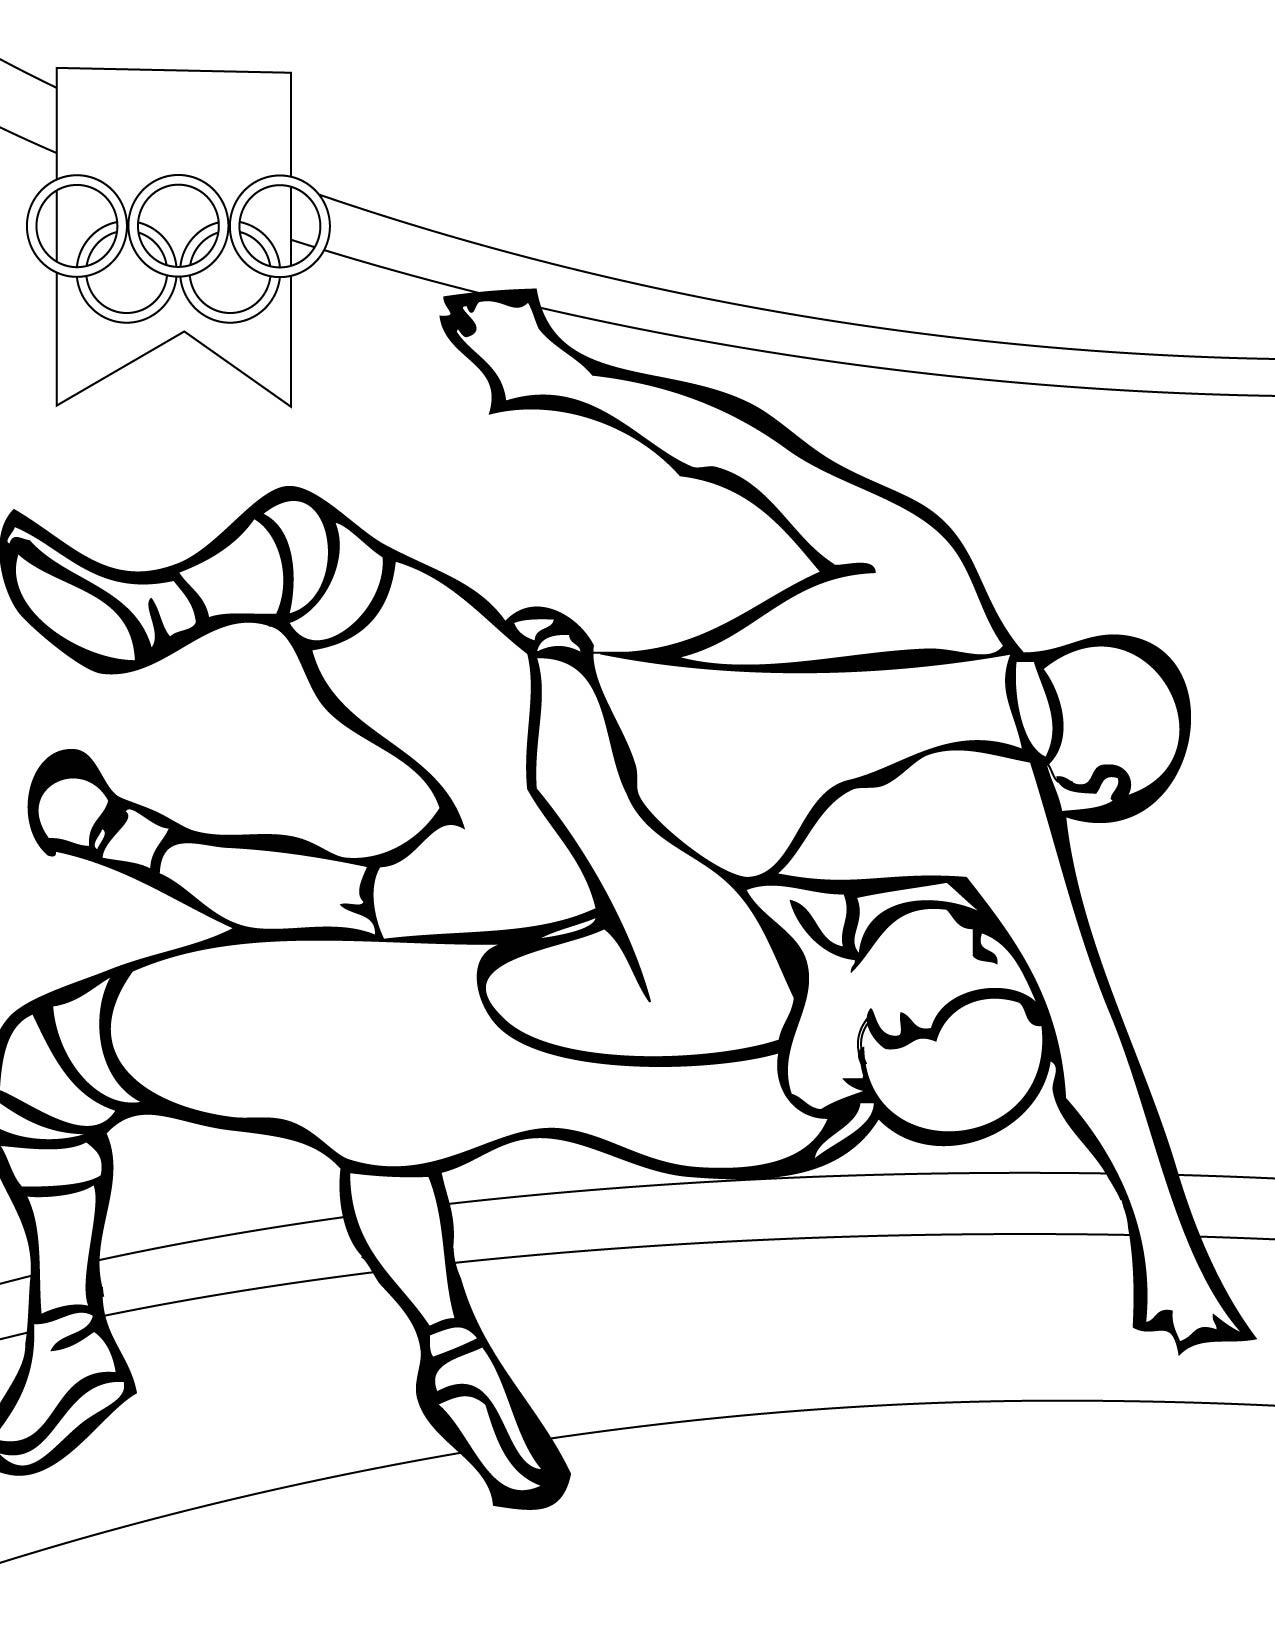 Coloring Pages Wrestling Color Pages wrestling color pages eassume com wrestler coloring eassume